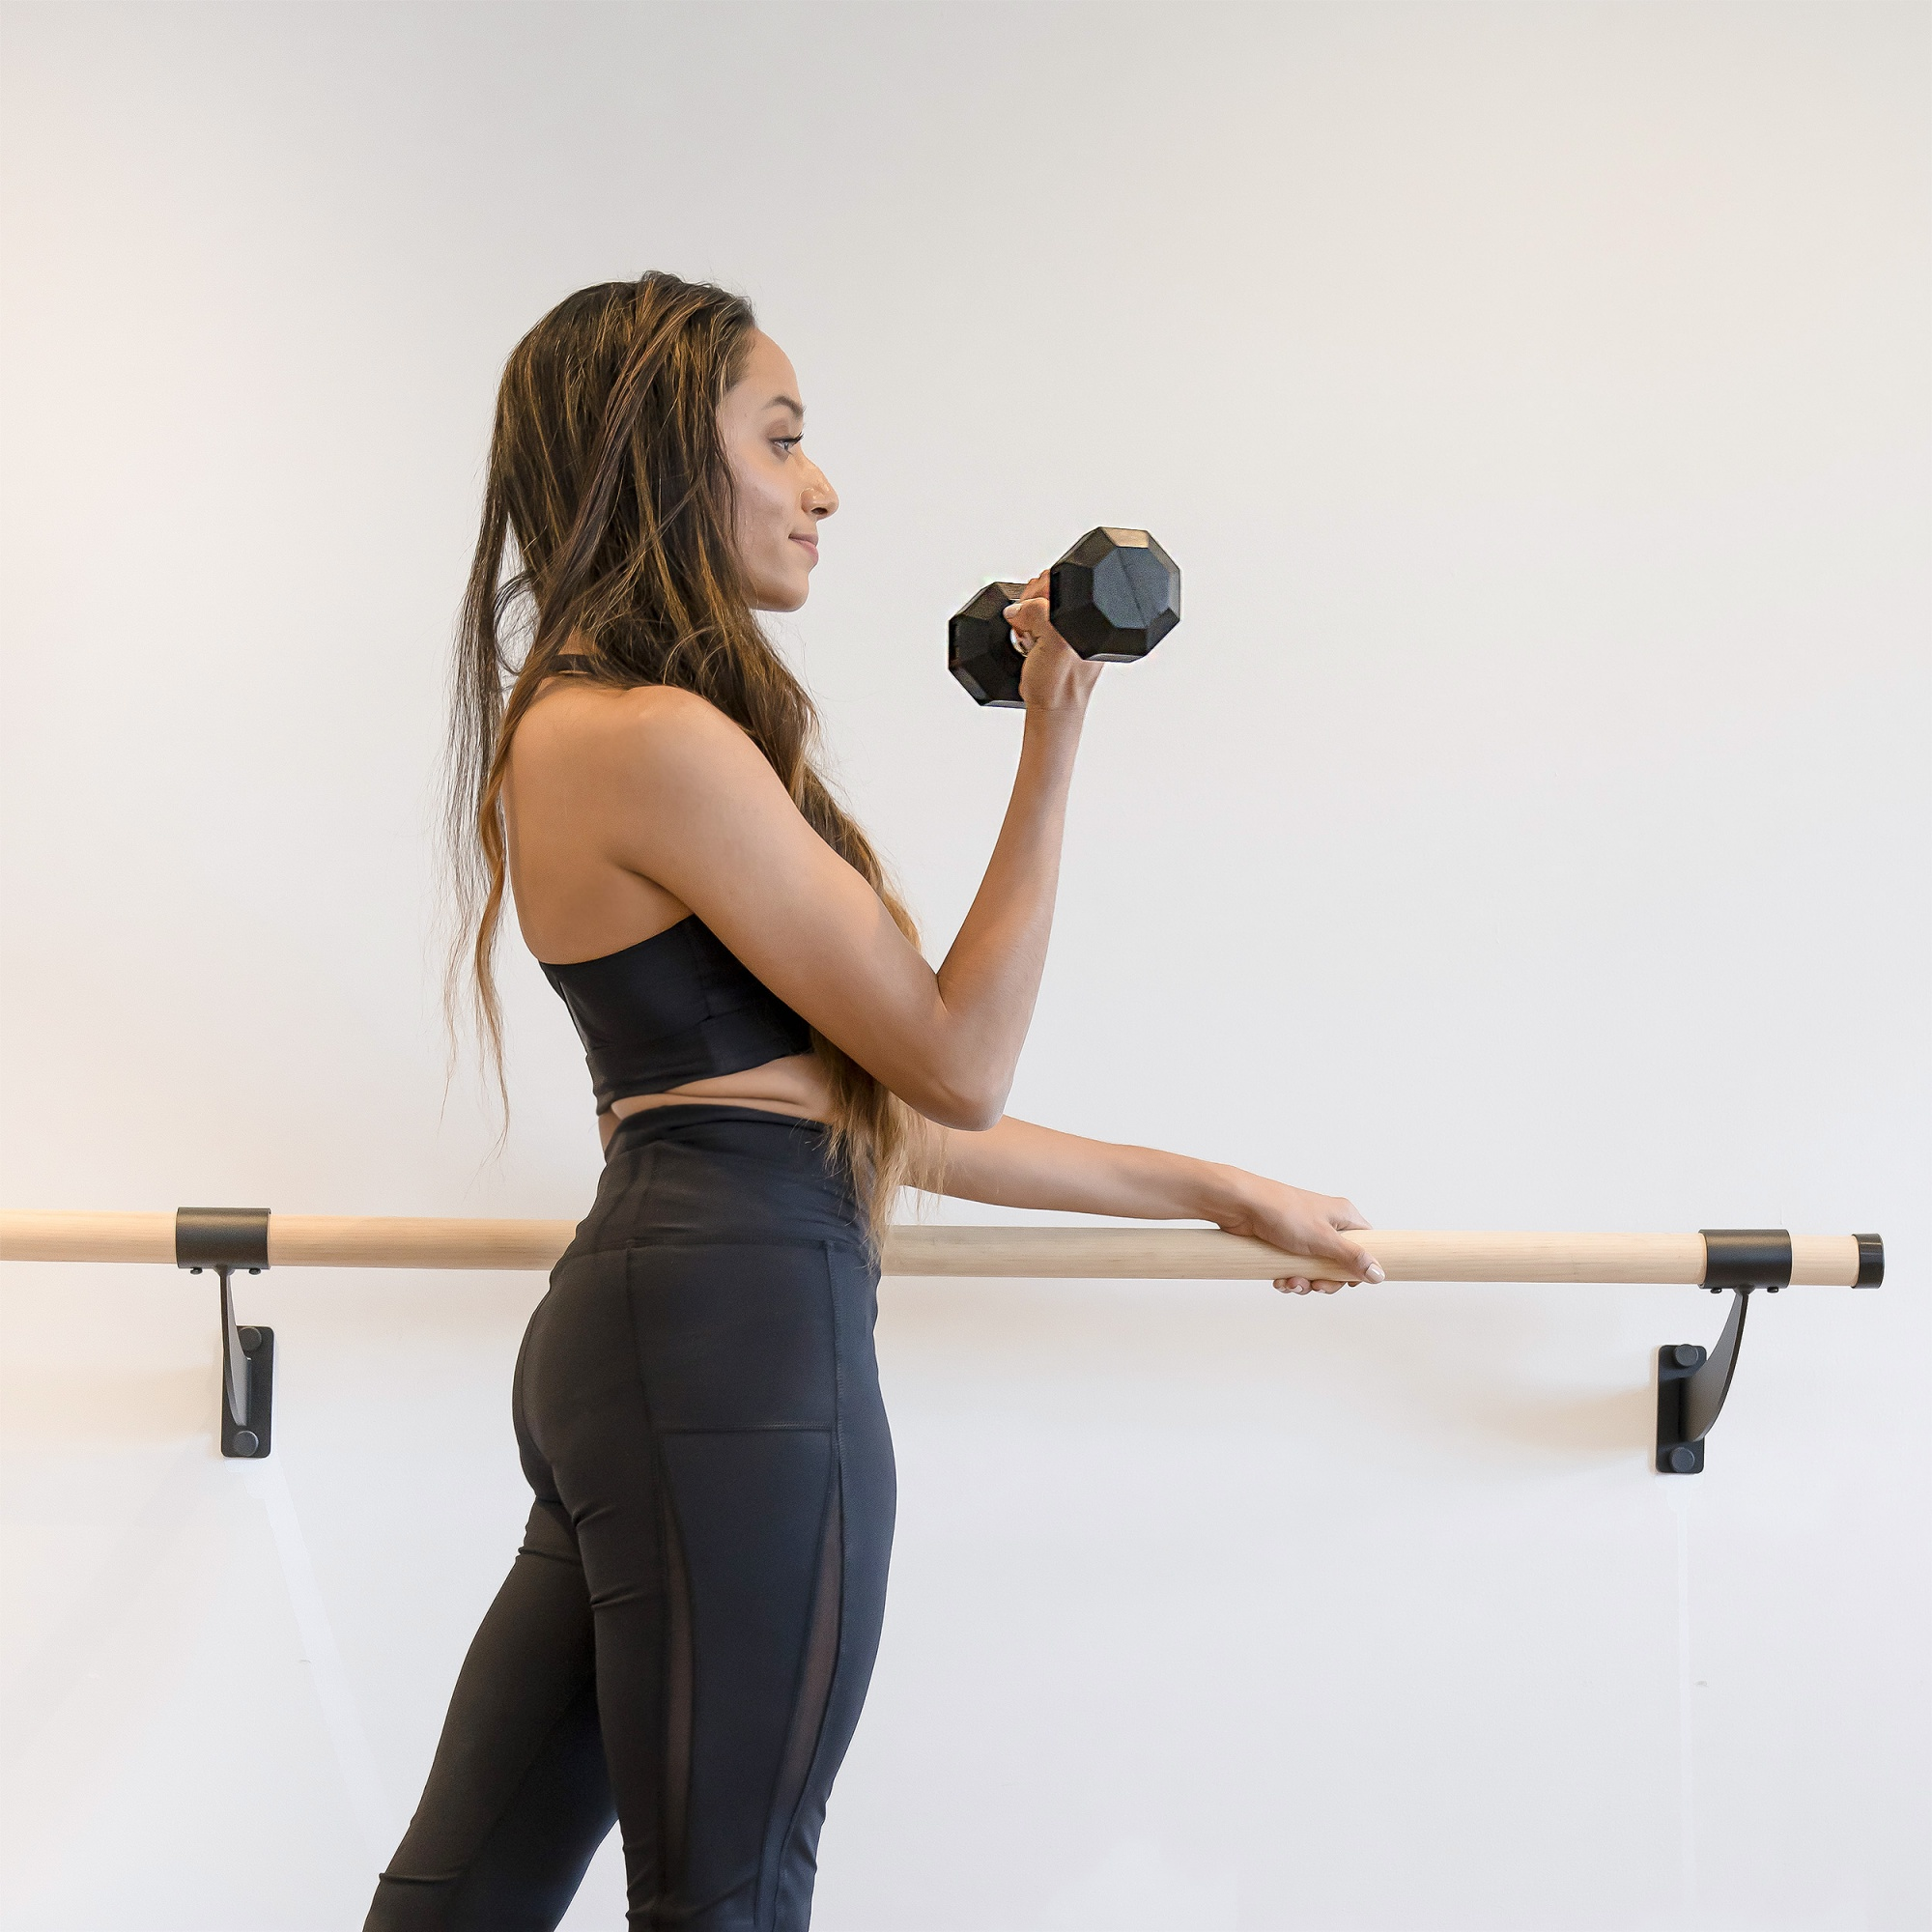 how to get rid of flabby arms, Black woman in black leggings at barre with dumbbell